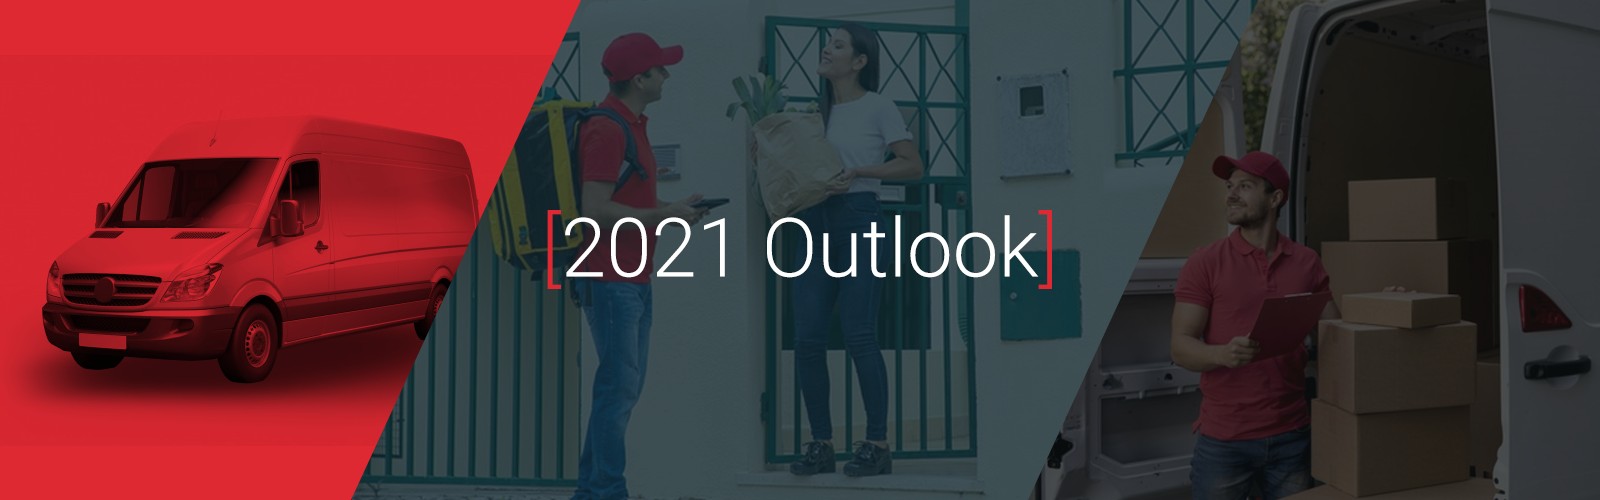 [2021 outlook] Advanced Route Optimisation, Order Scheduling and ETA Calculation, what's next?